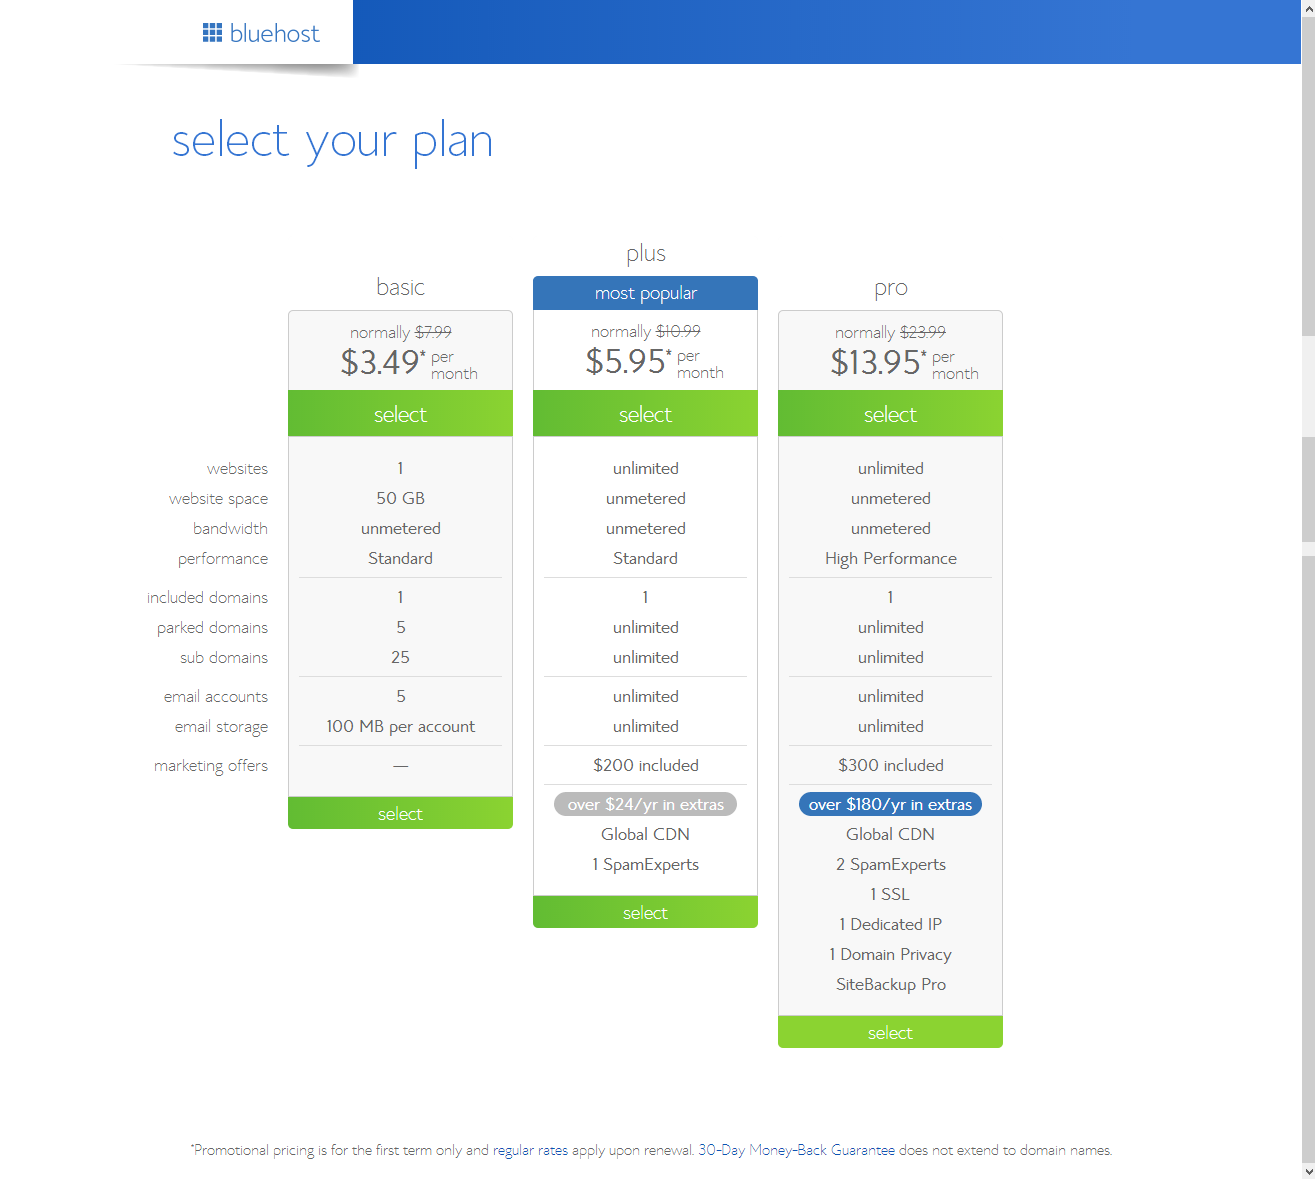 bluehost plan